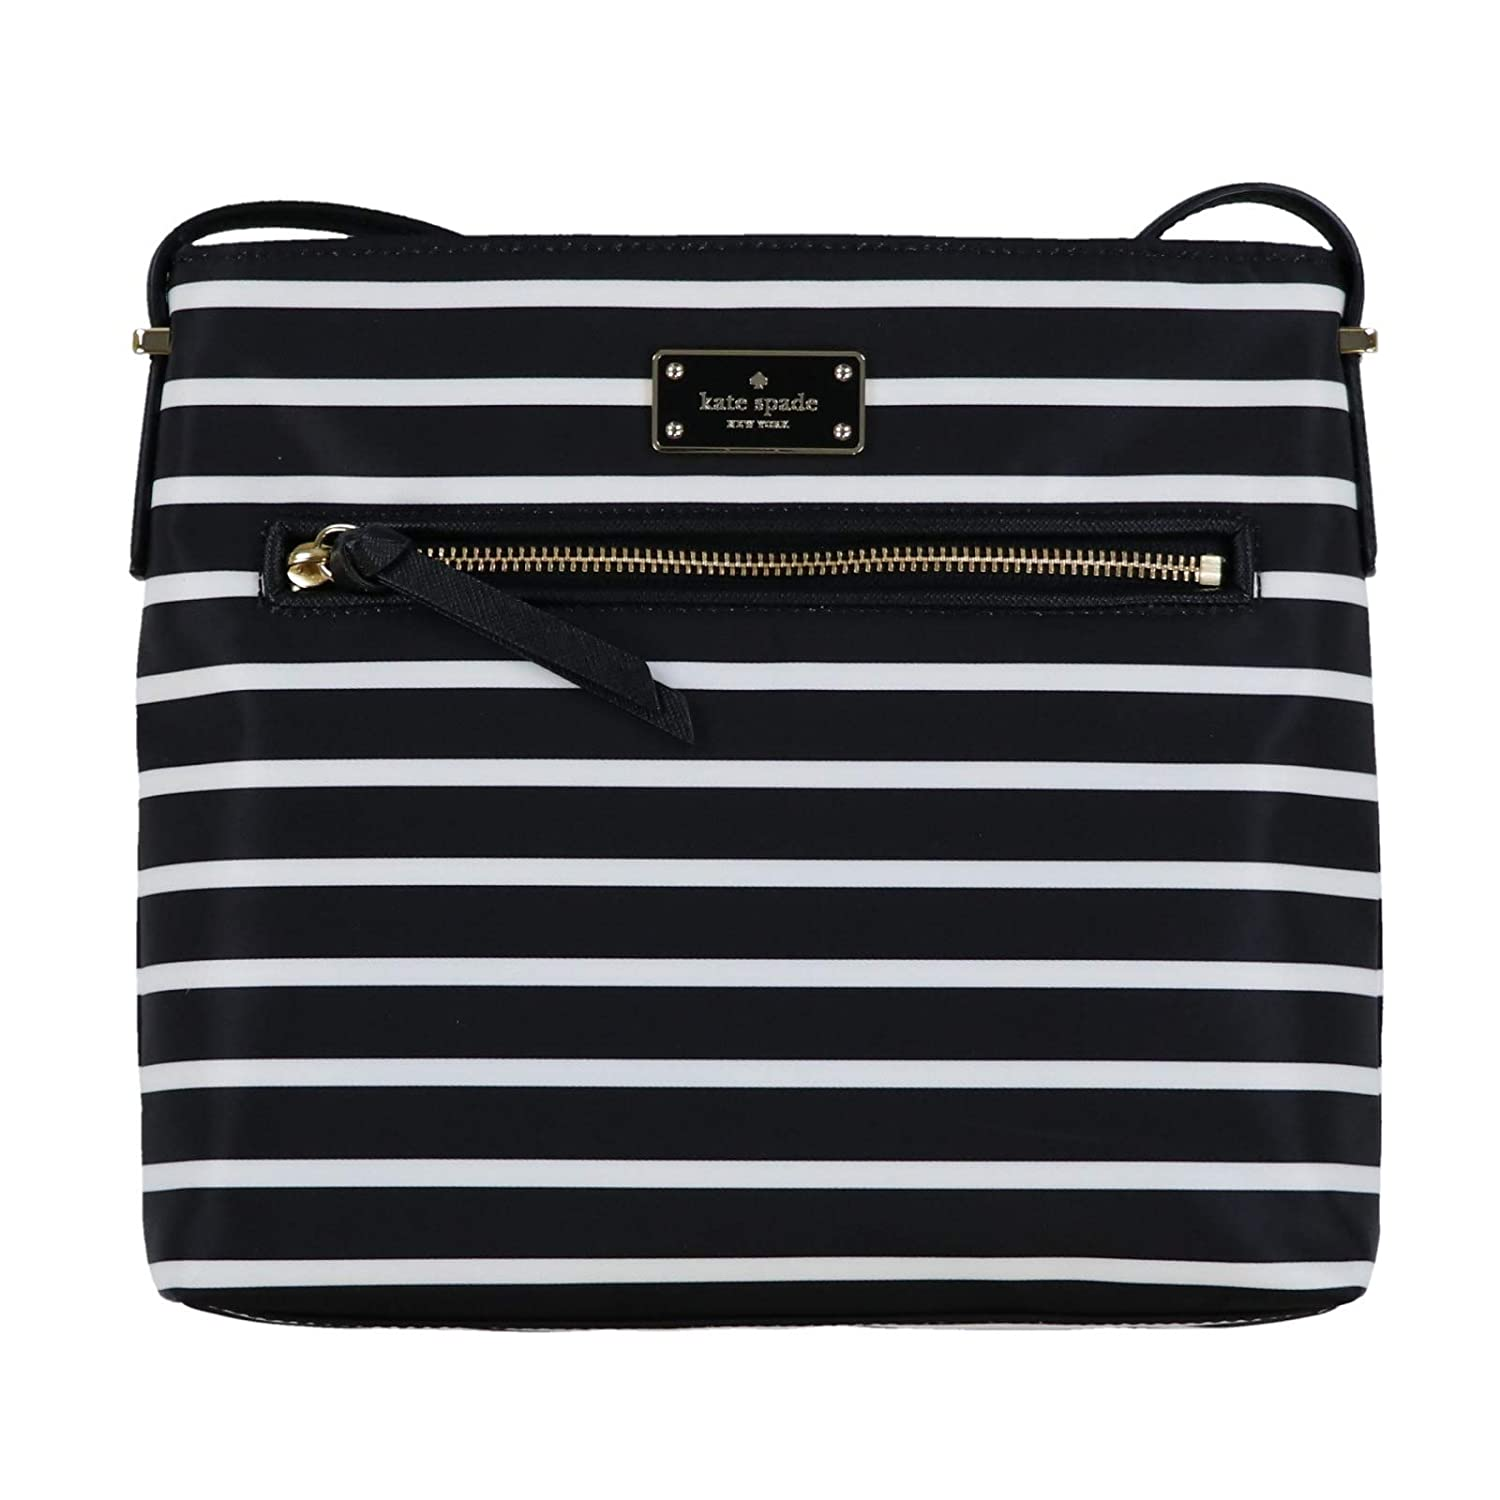 74d818e7059a2 Amazon.com  Kate Spade New York Dessi Wilson Road French Stripe Crossbody  Purse (Black Multi)  Shoes